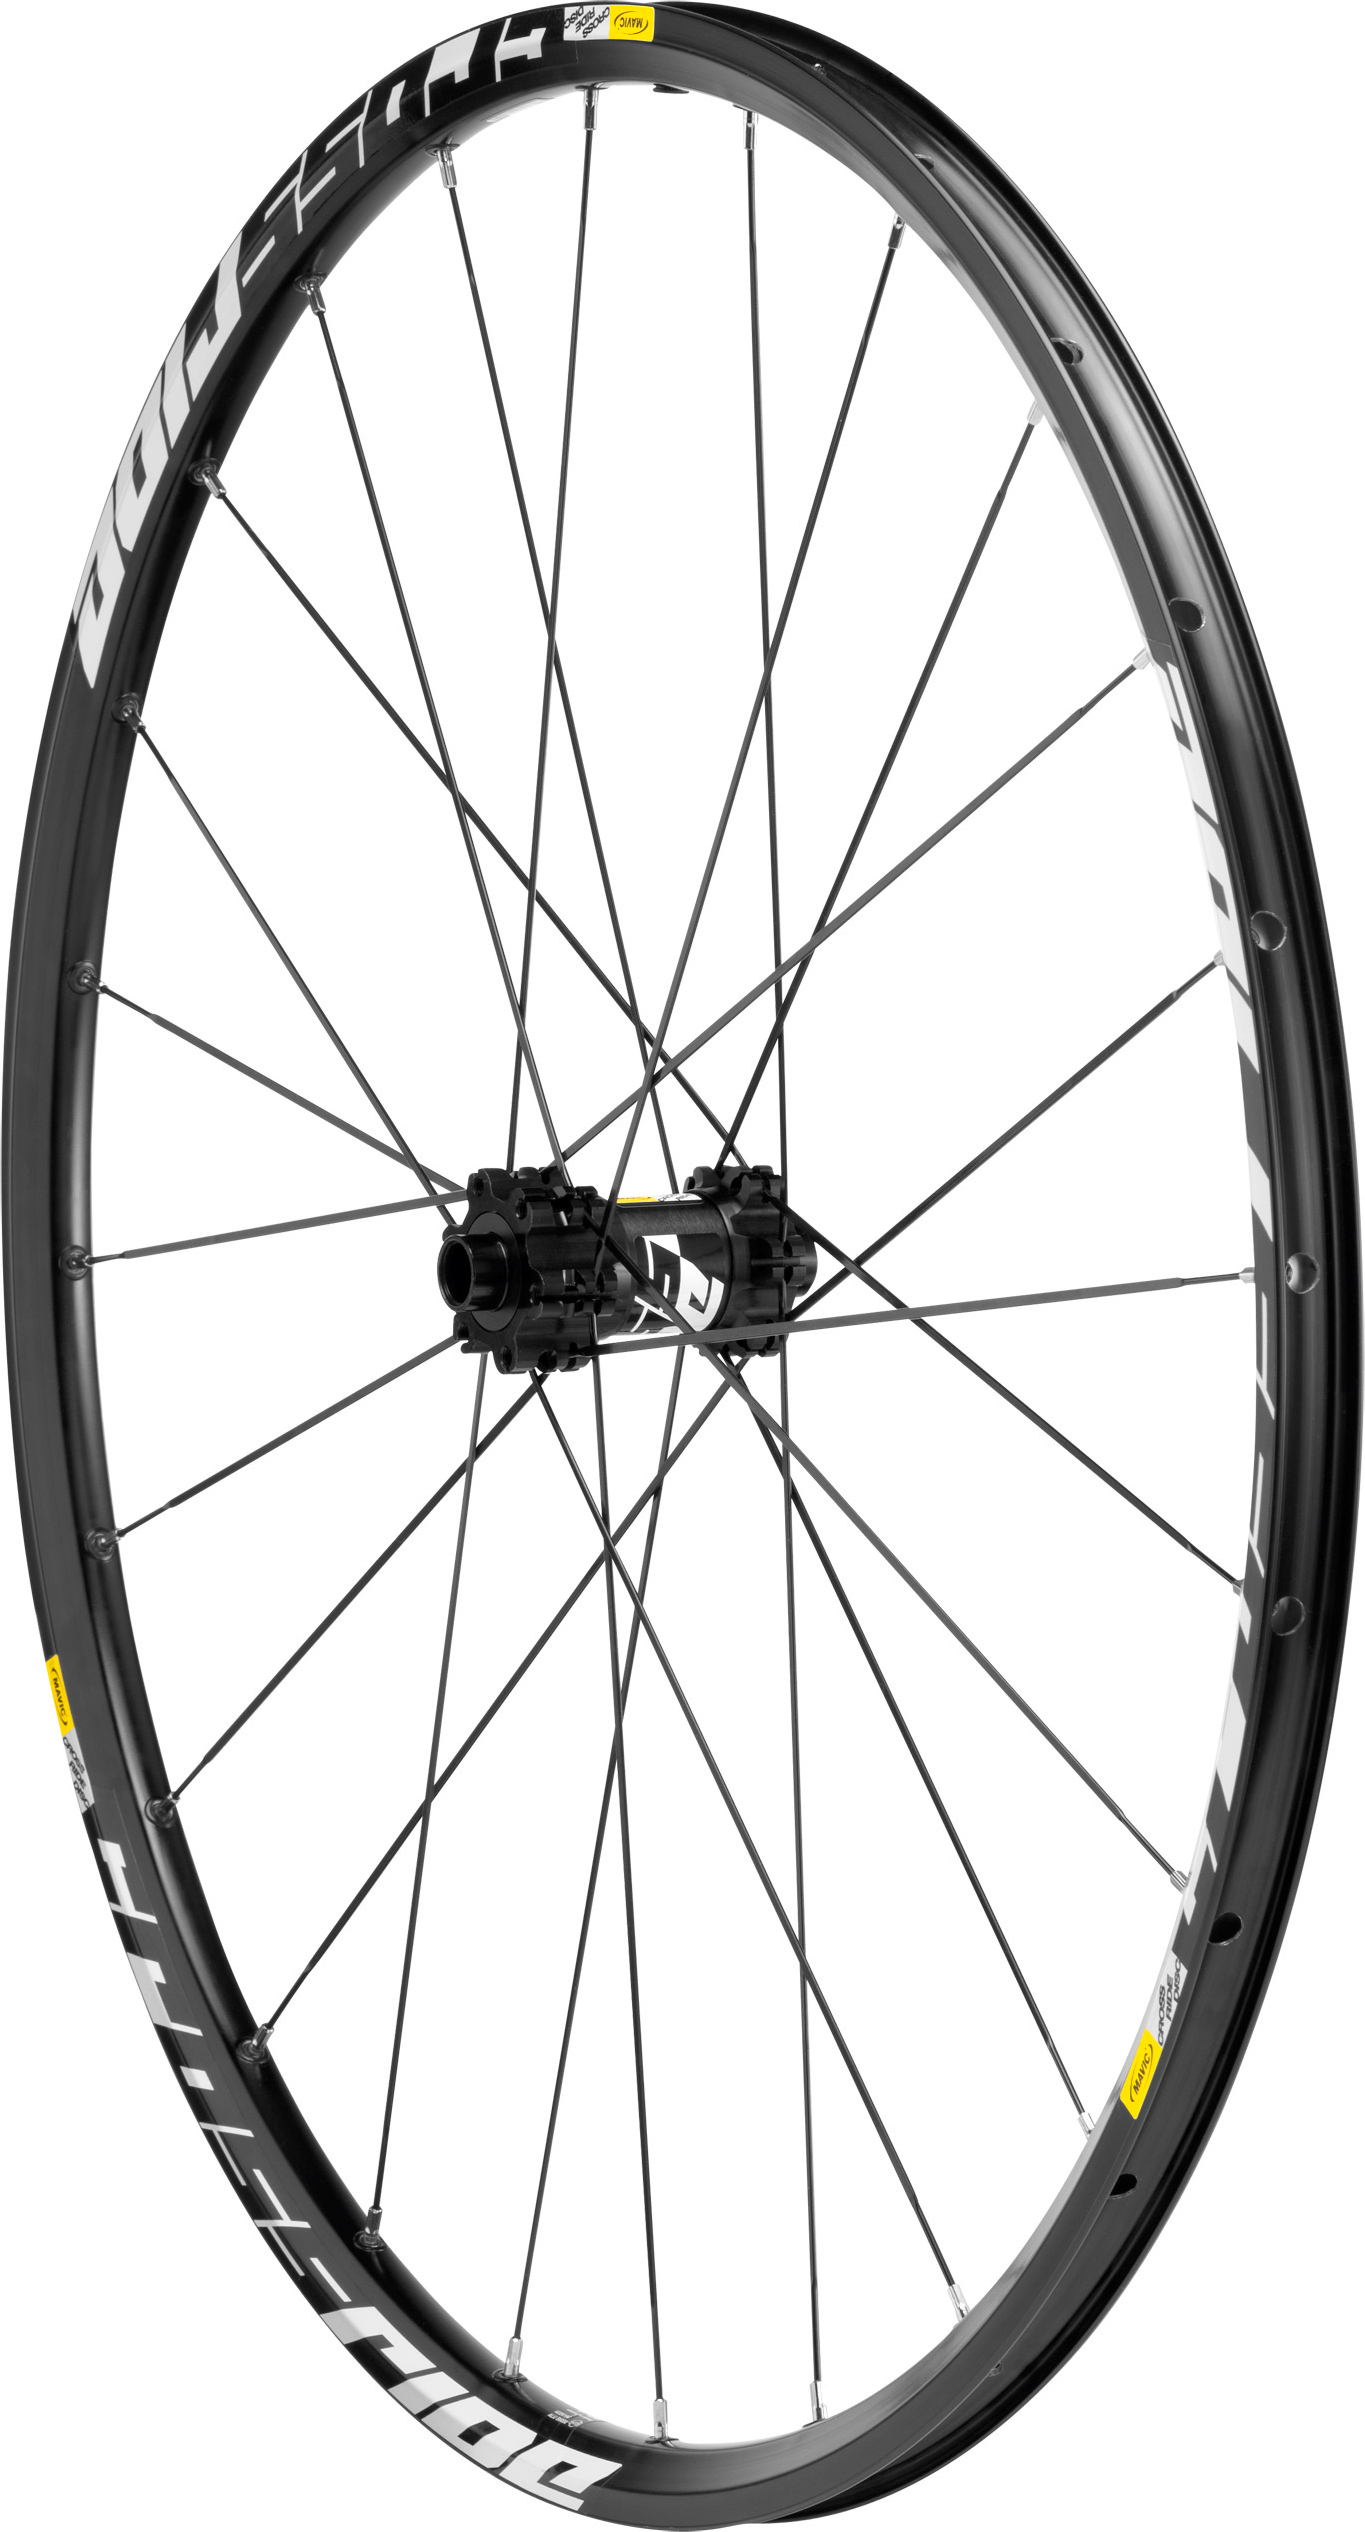 Sea Otter Mavic S New 29er Wheels Singletrack